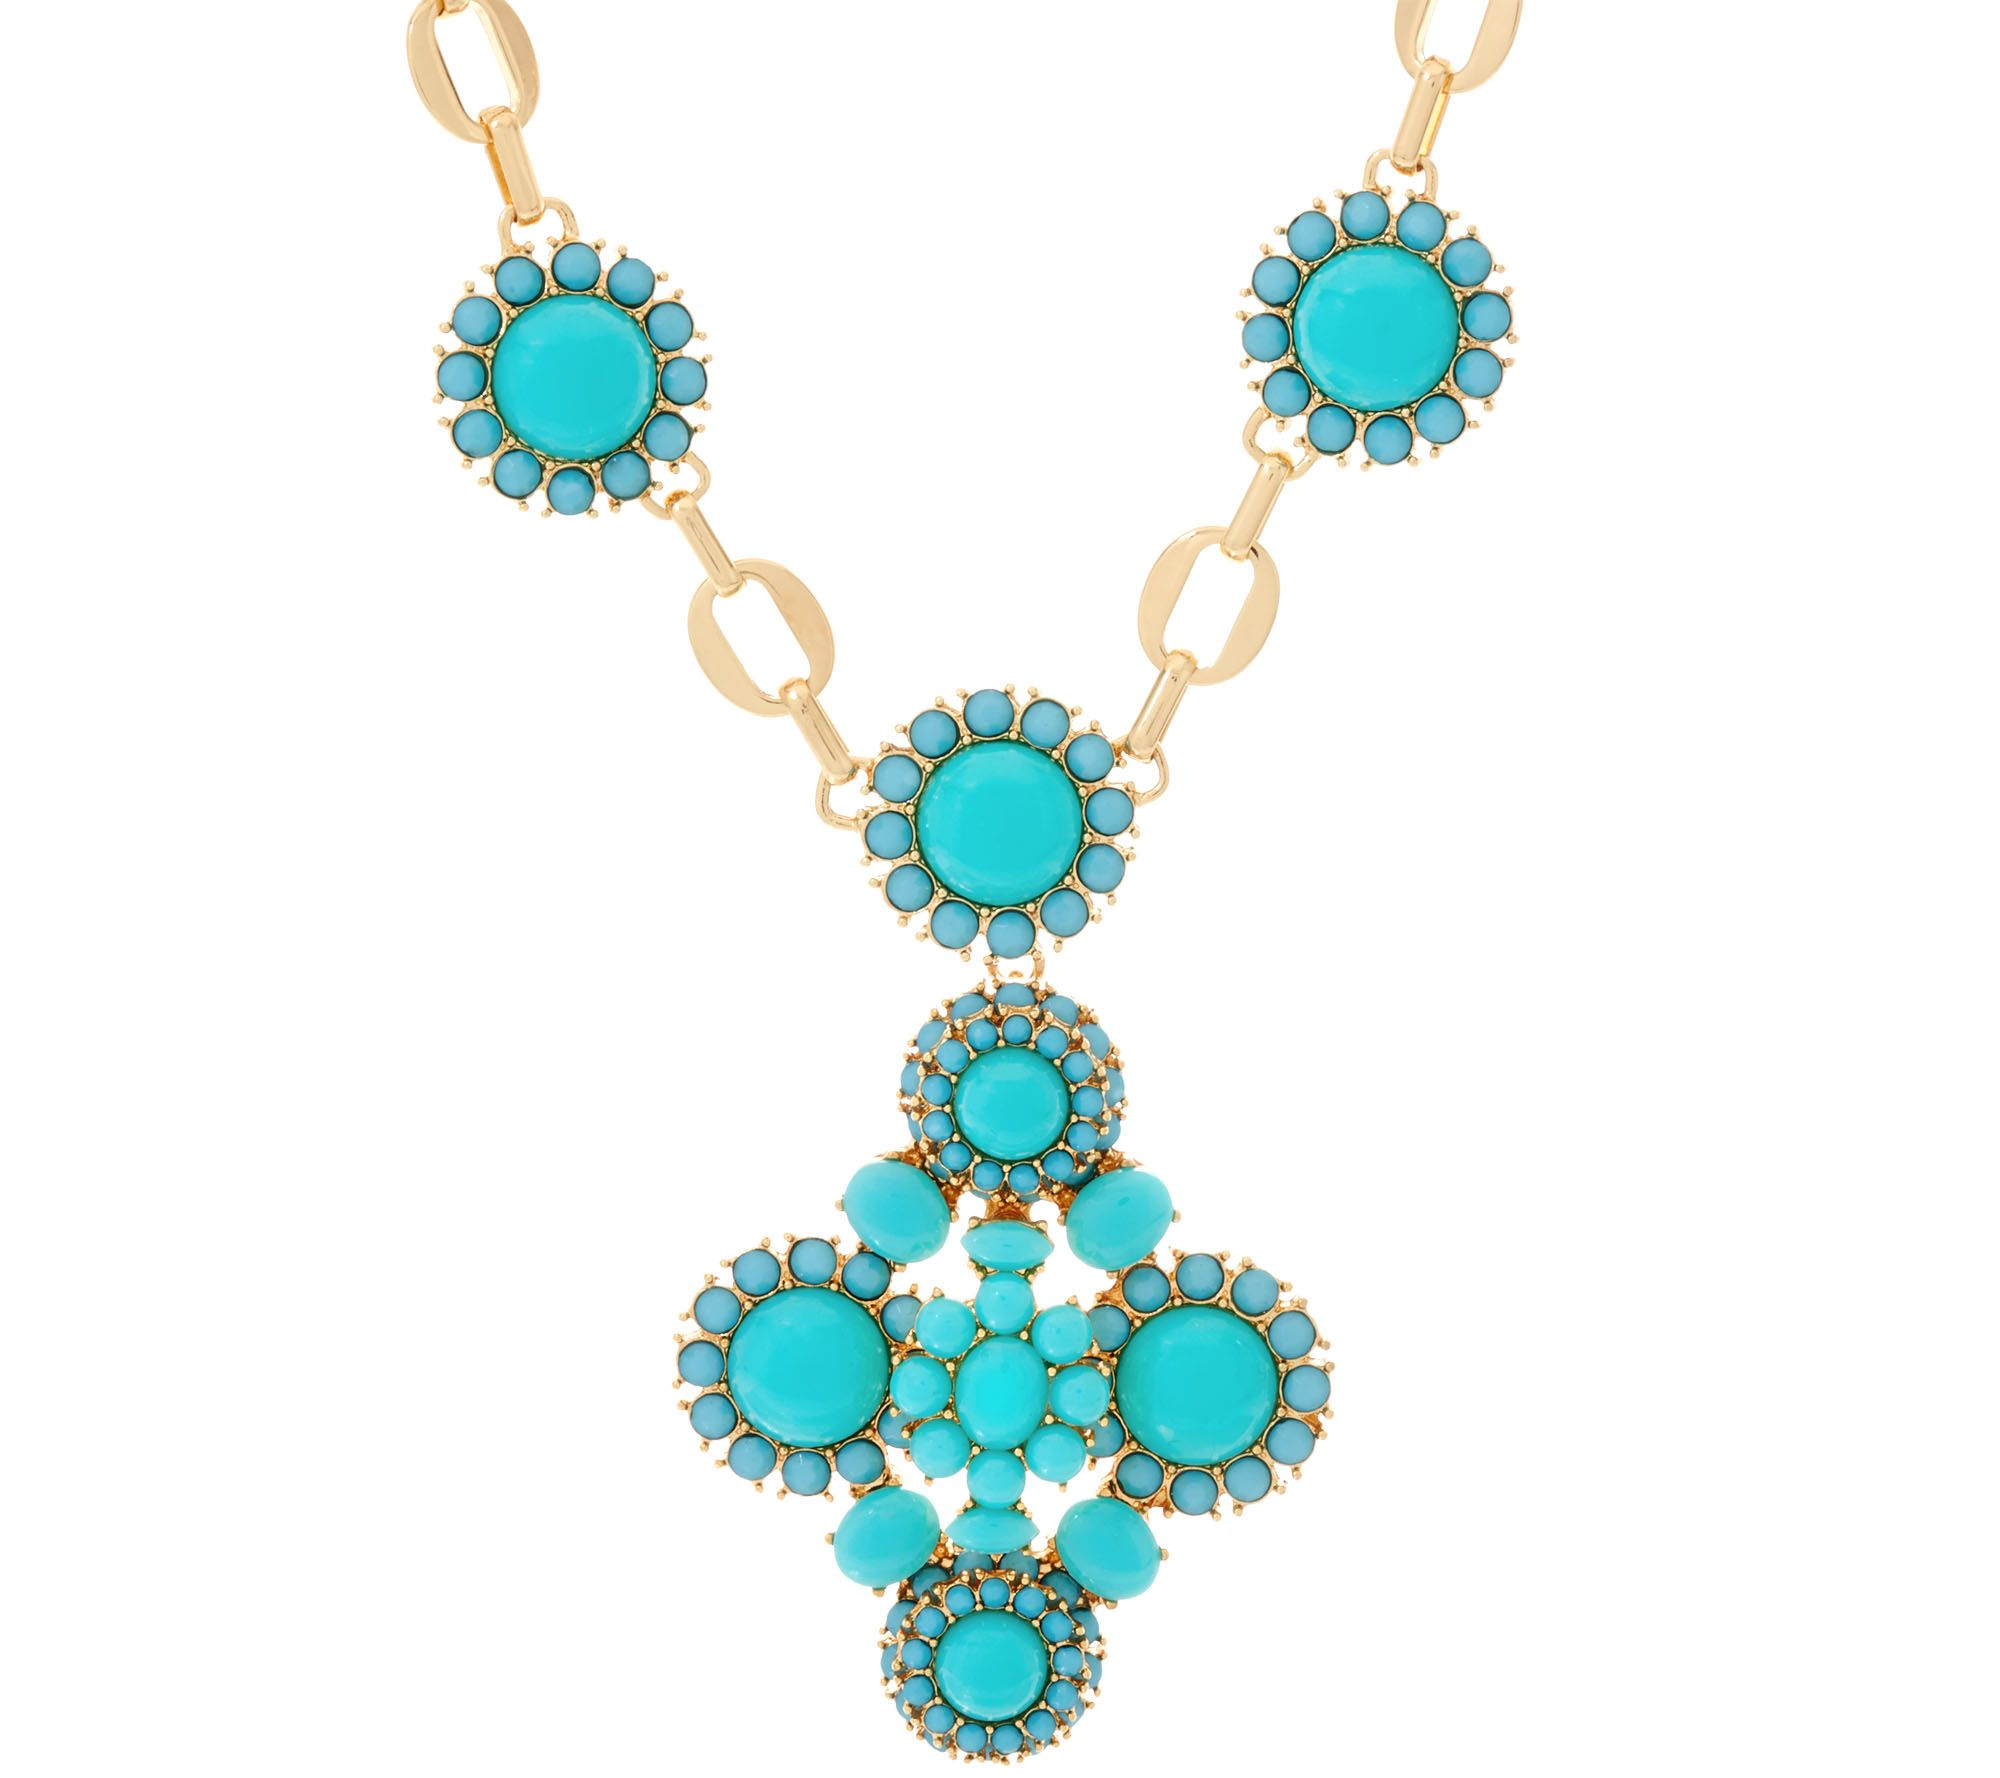 Joan rivers moroccan dreams pendant necklace w 3 for Joan rivers jewelry necklaces